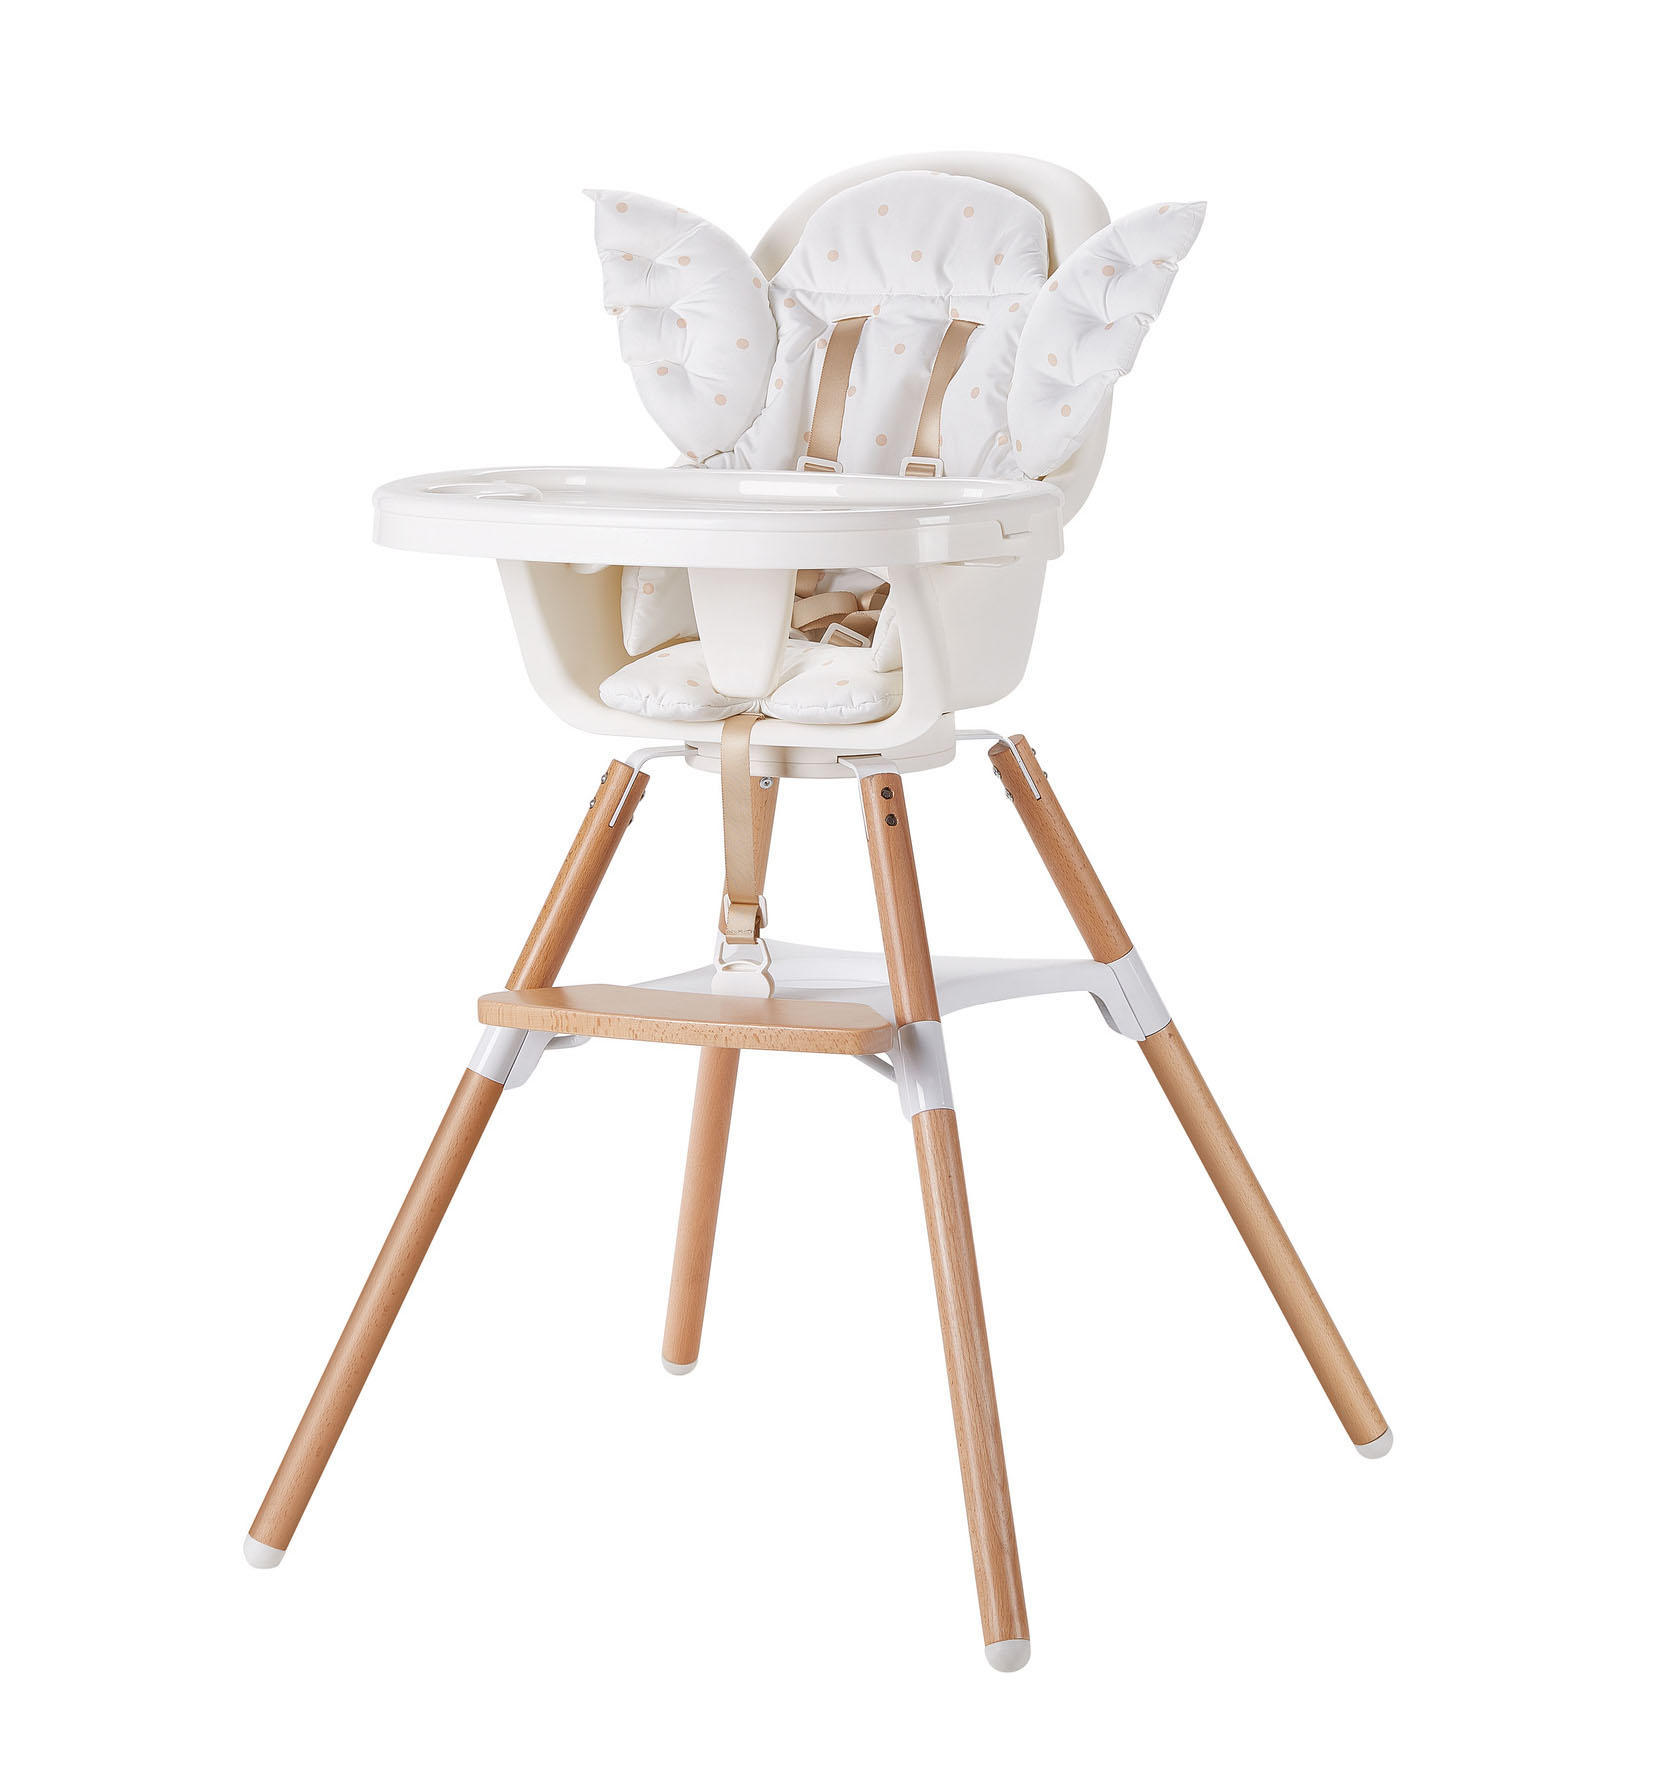 Latest chair top high chair infant manufacturers for feeding-2